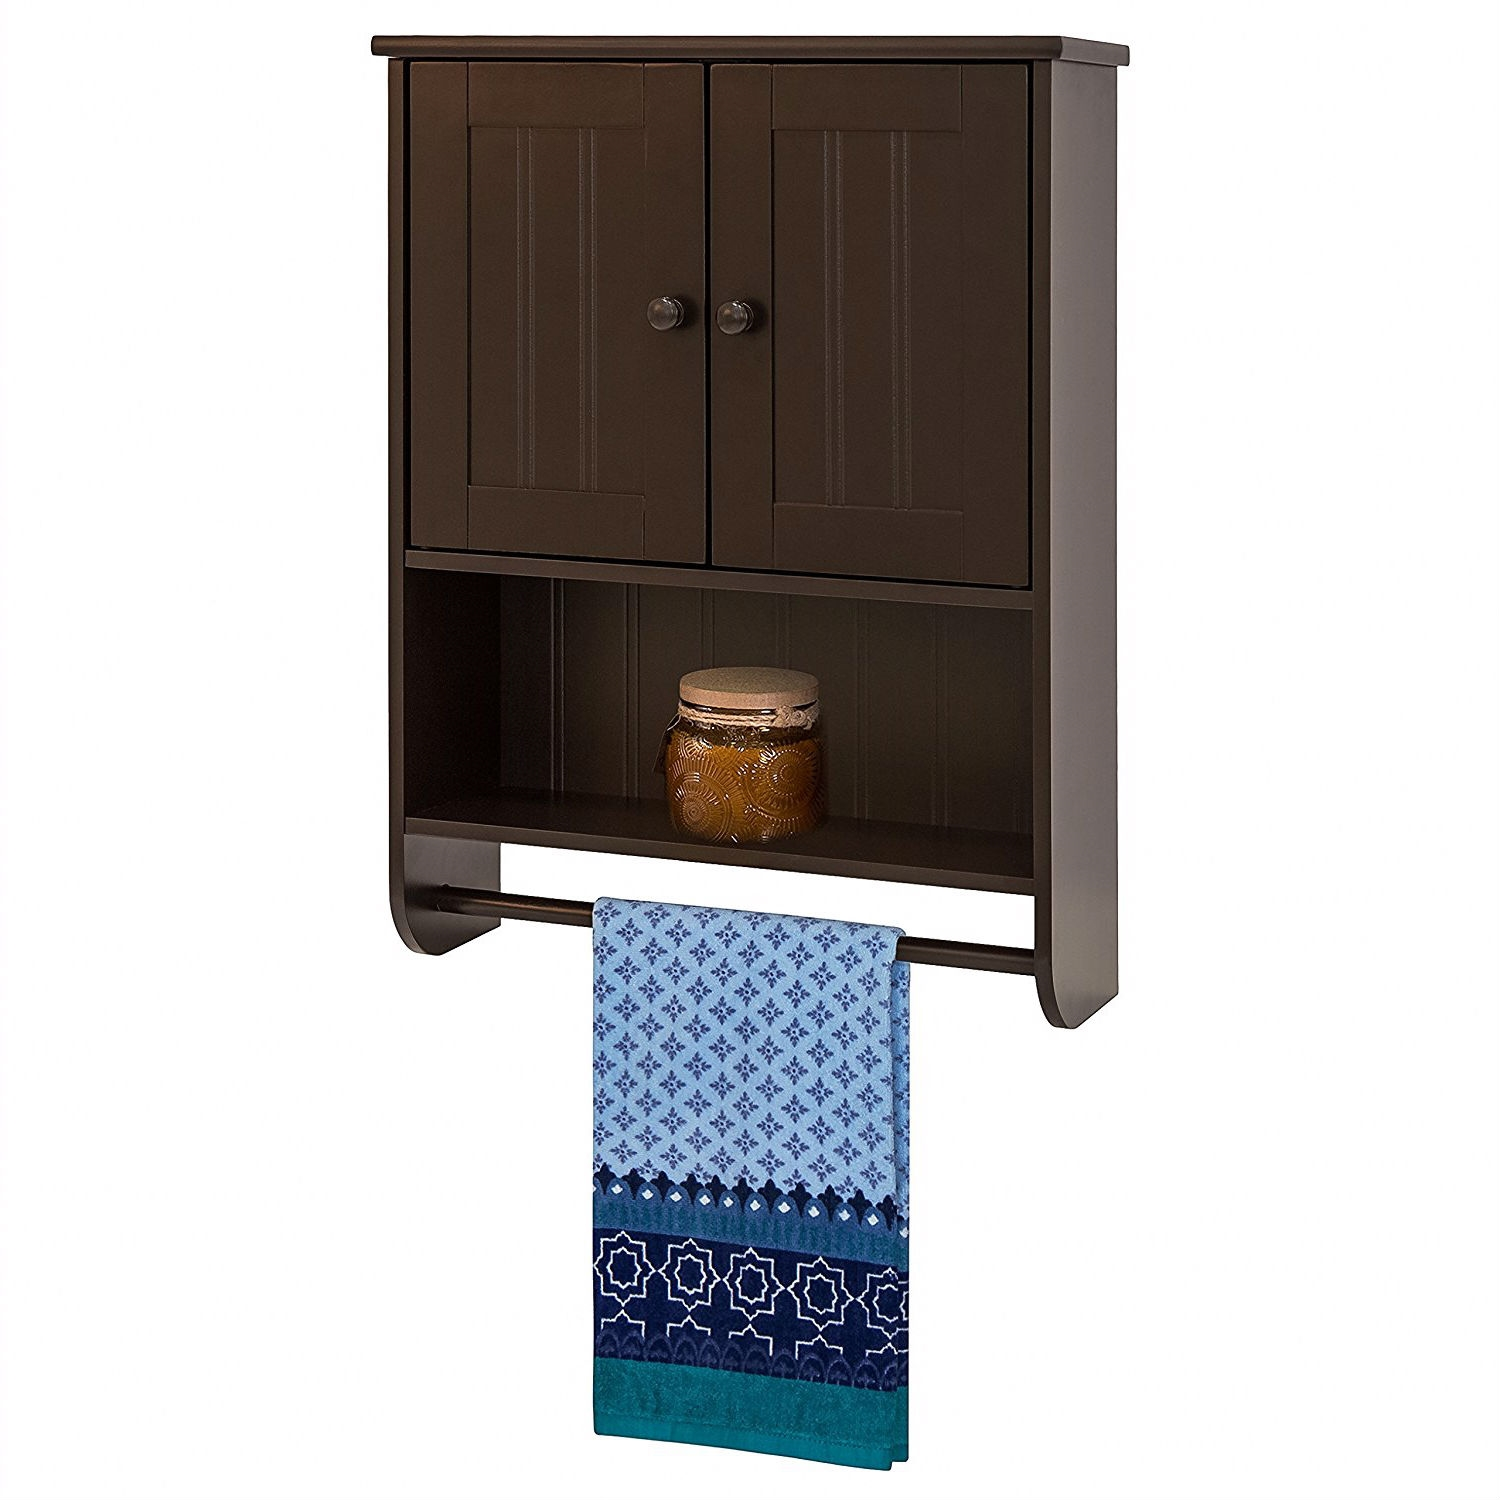 Espresso Bathroom Wall Cabinet Cupboard With Towel Bar